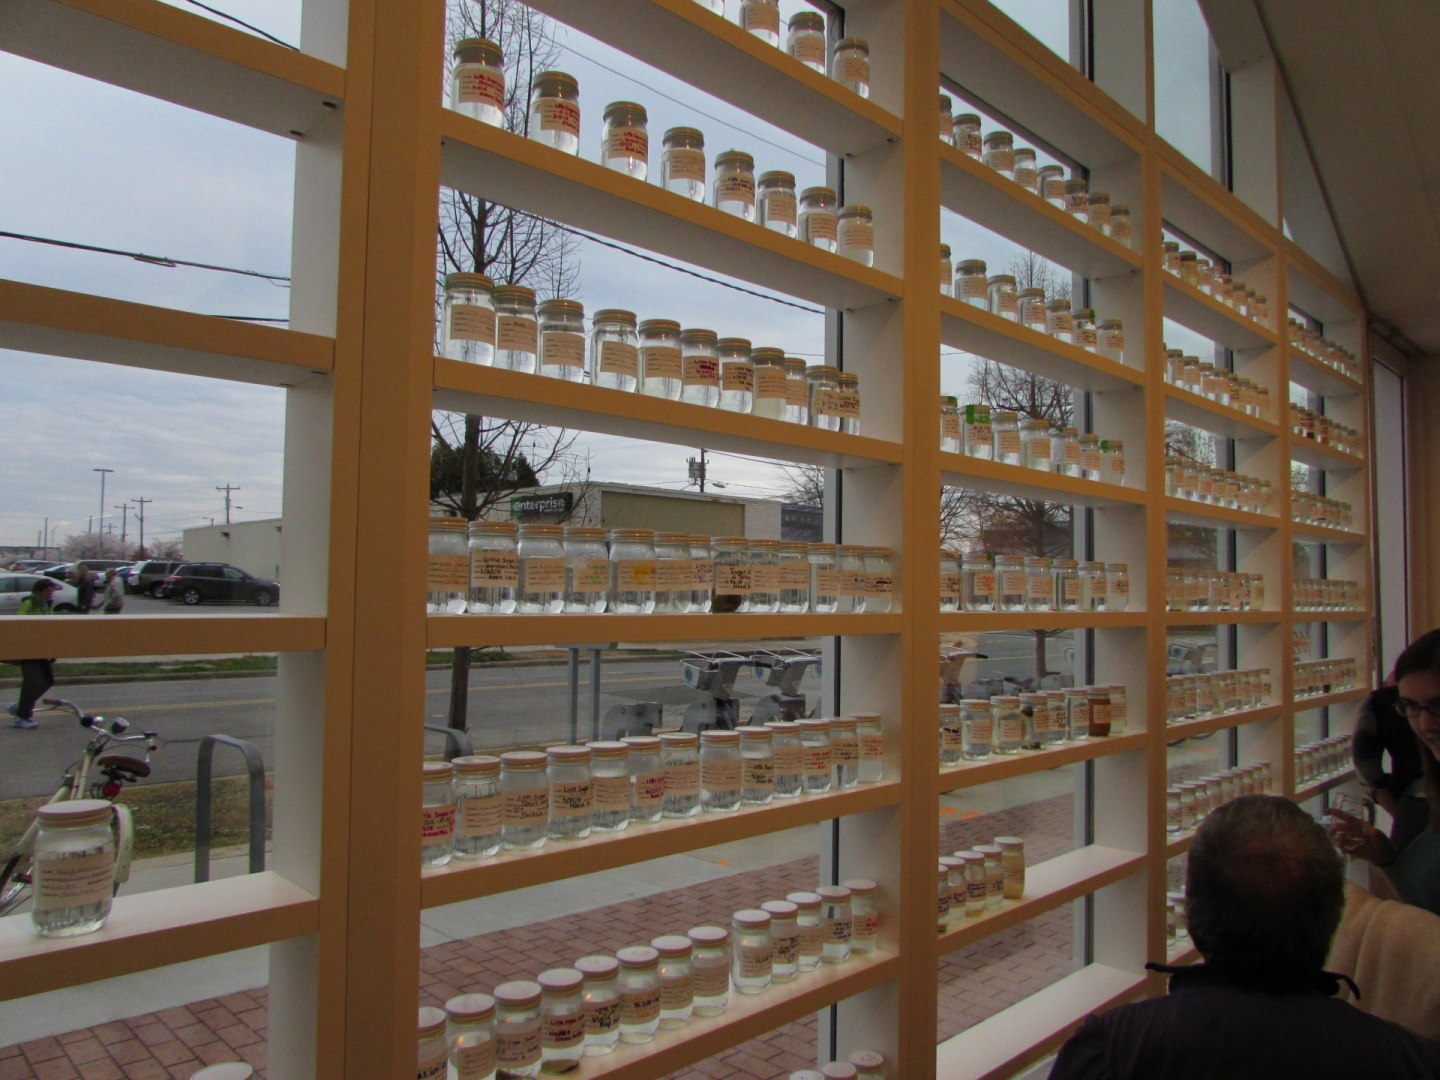 Stacy Levy's Watershed Pantry